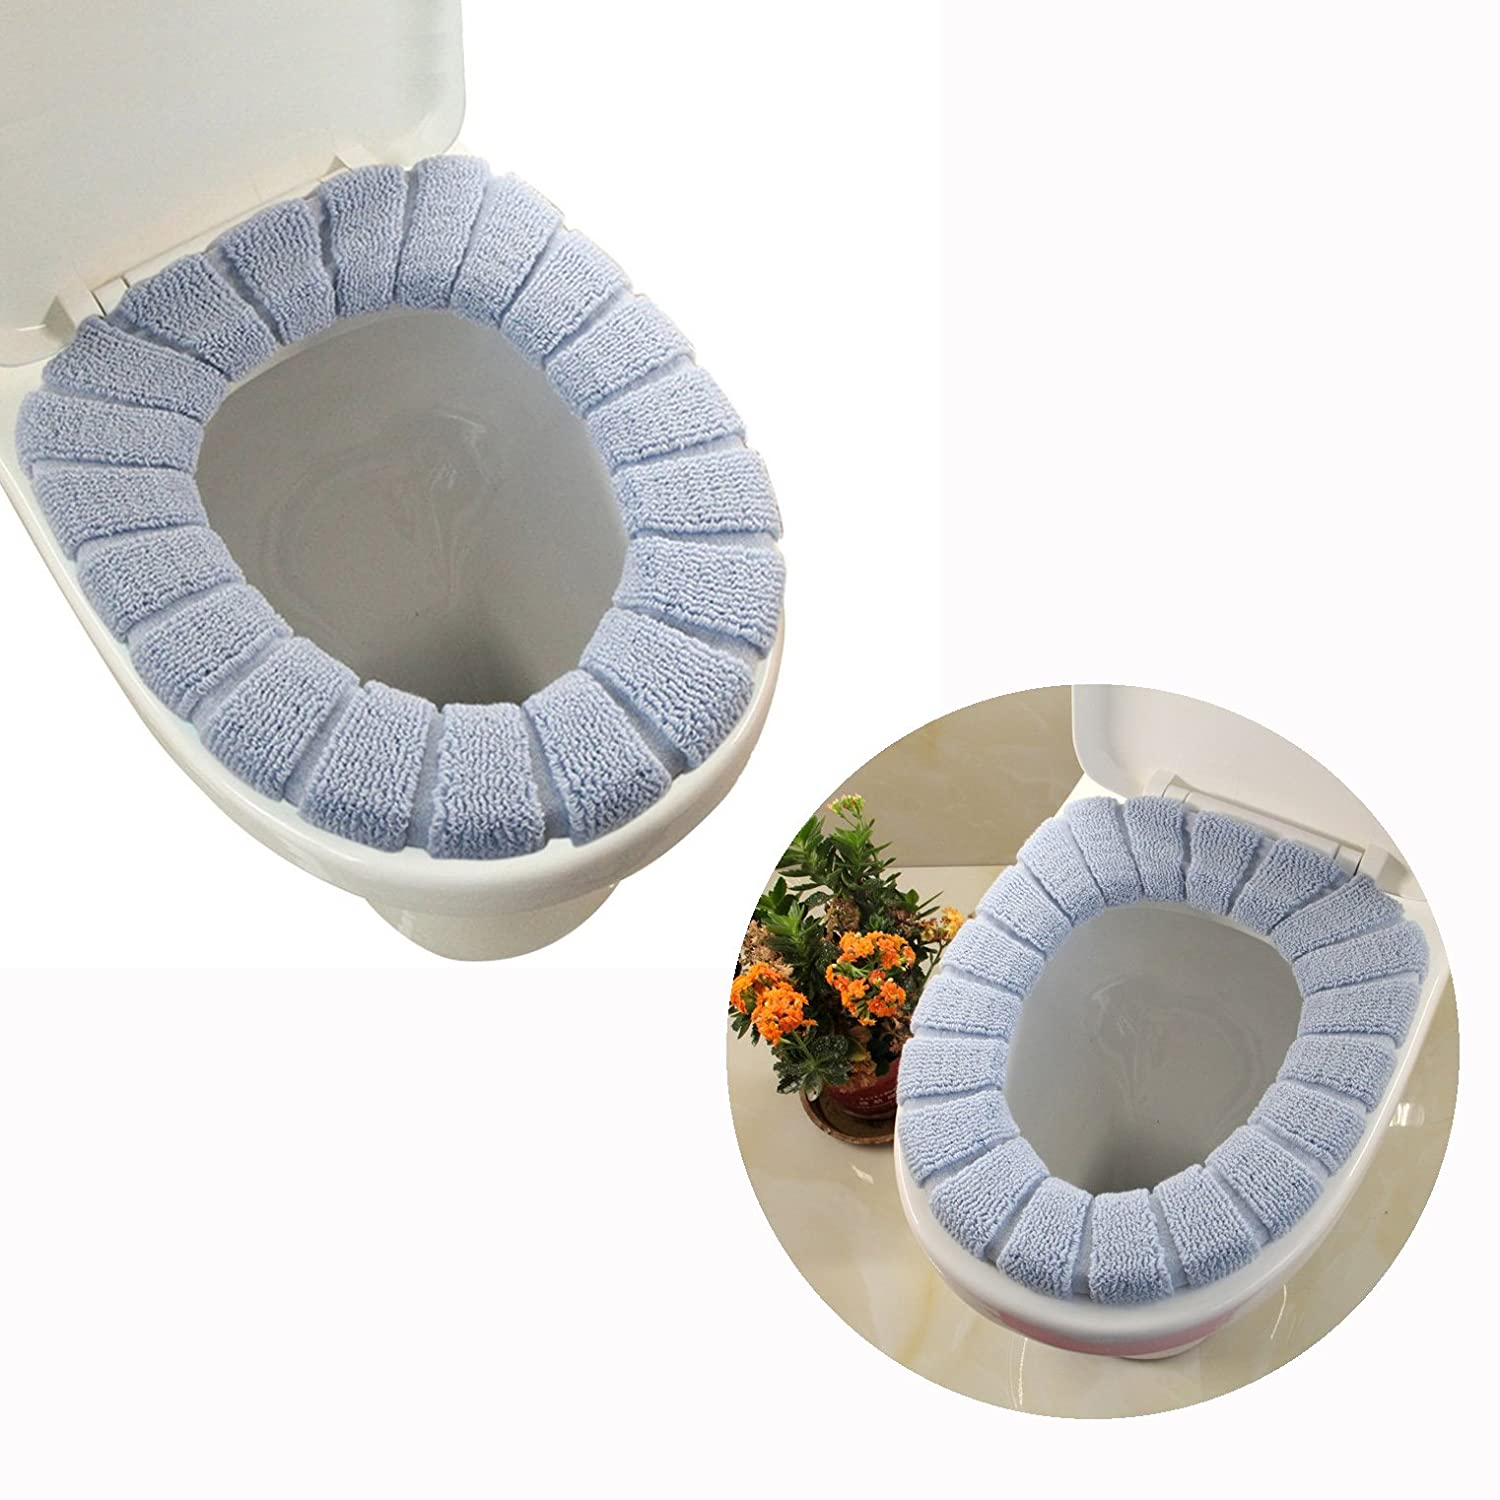 Cisixin Bathroom Soft Thicker Warmer Stretchable Washable Cloth Toilet Seat Cover Pad (Blue)